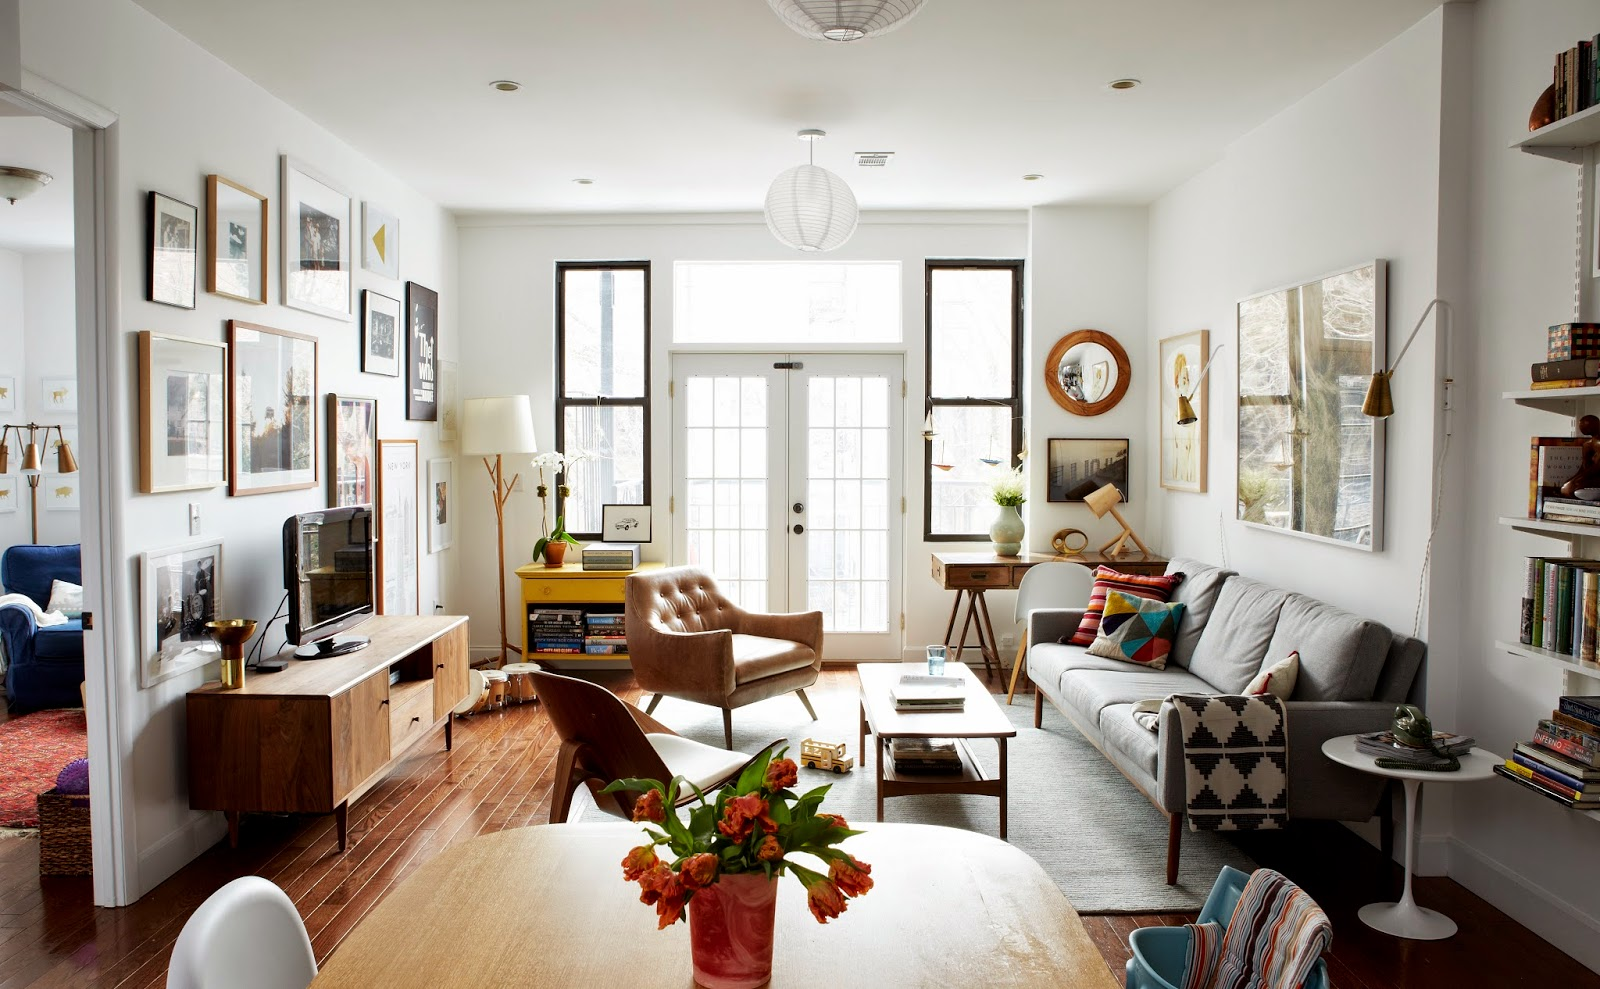 Our brooklyn apartment a cup of jo - One bedroom apartment living room ideas ...